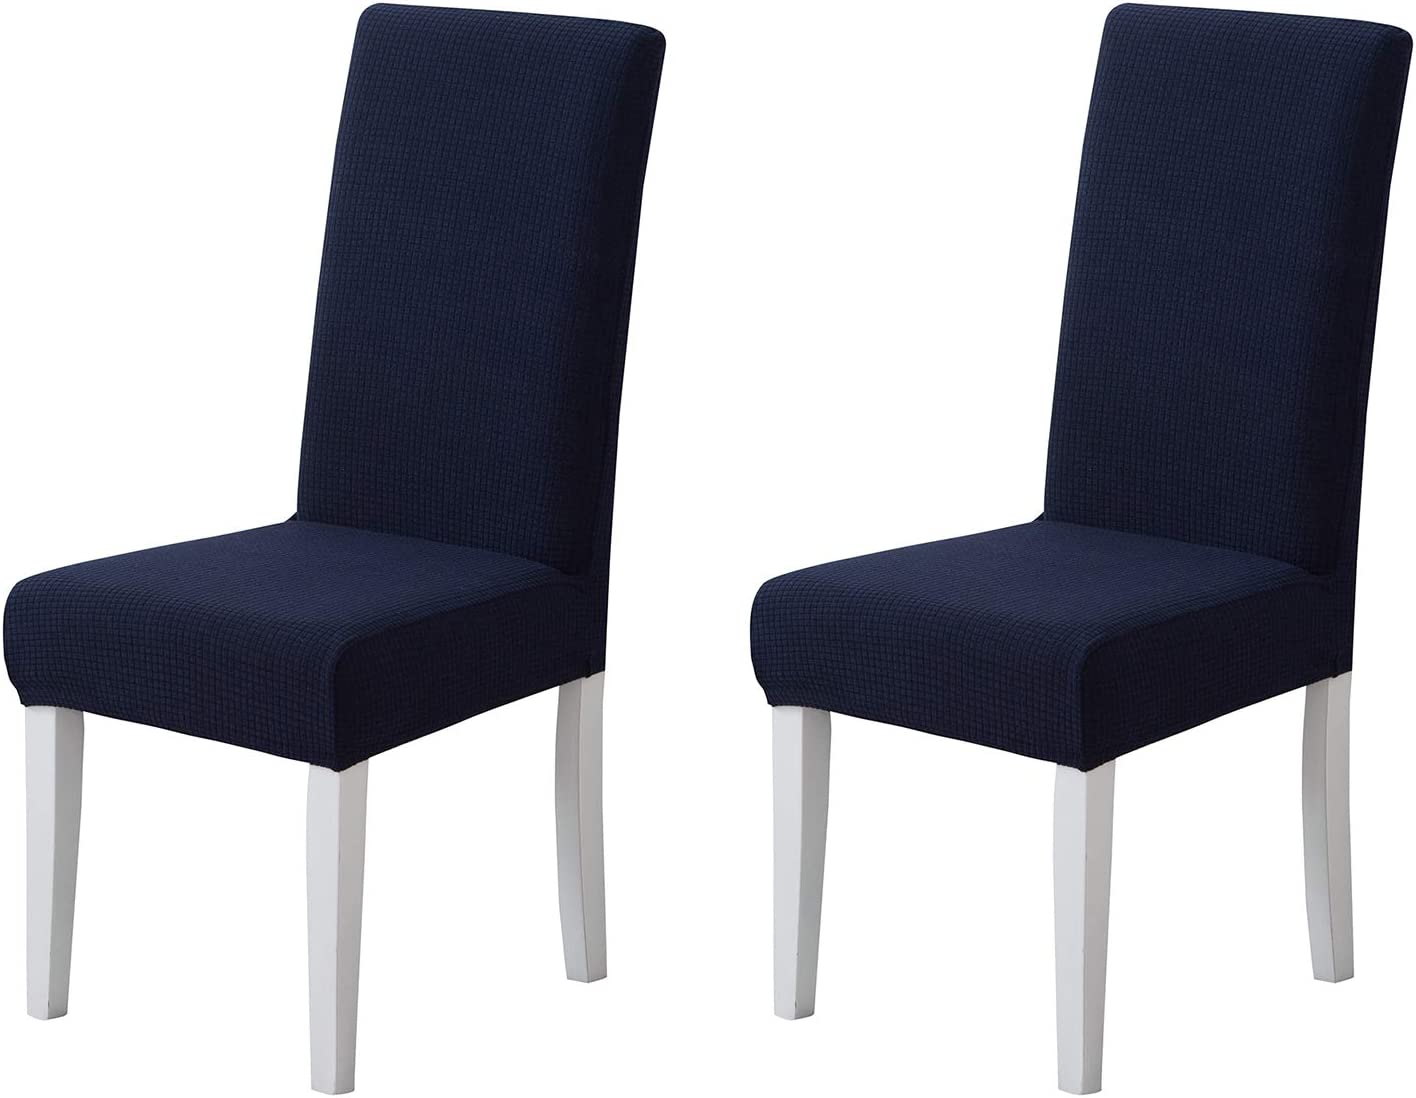 Pack of 2 - Dining Room Chair Slipcovers, Stretch Spandex Dining Chair Covers, Furniture Protector Covers Removable & Washable, Perfect for Dining Room, Restaurant, Hotel, Ceremony, Event Navy Blue